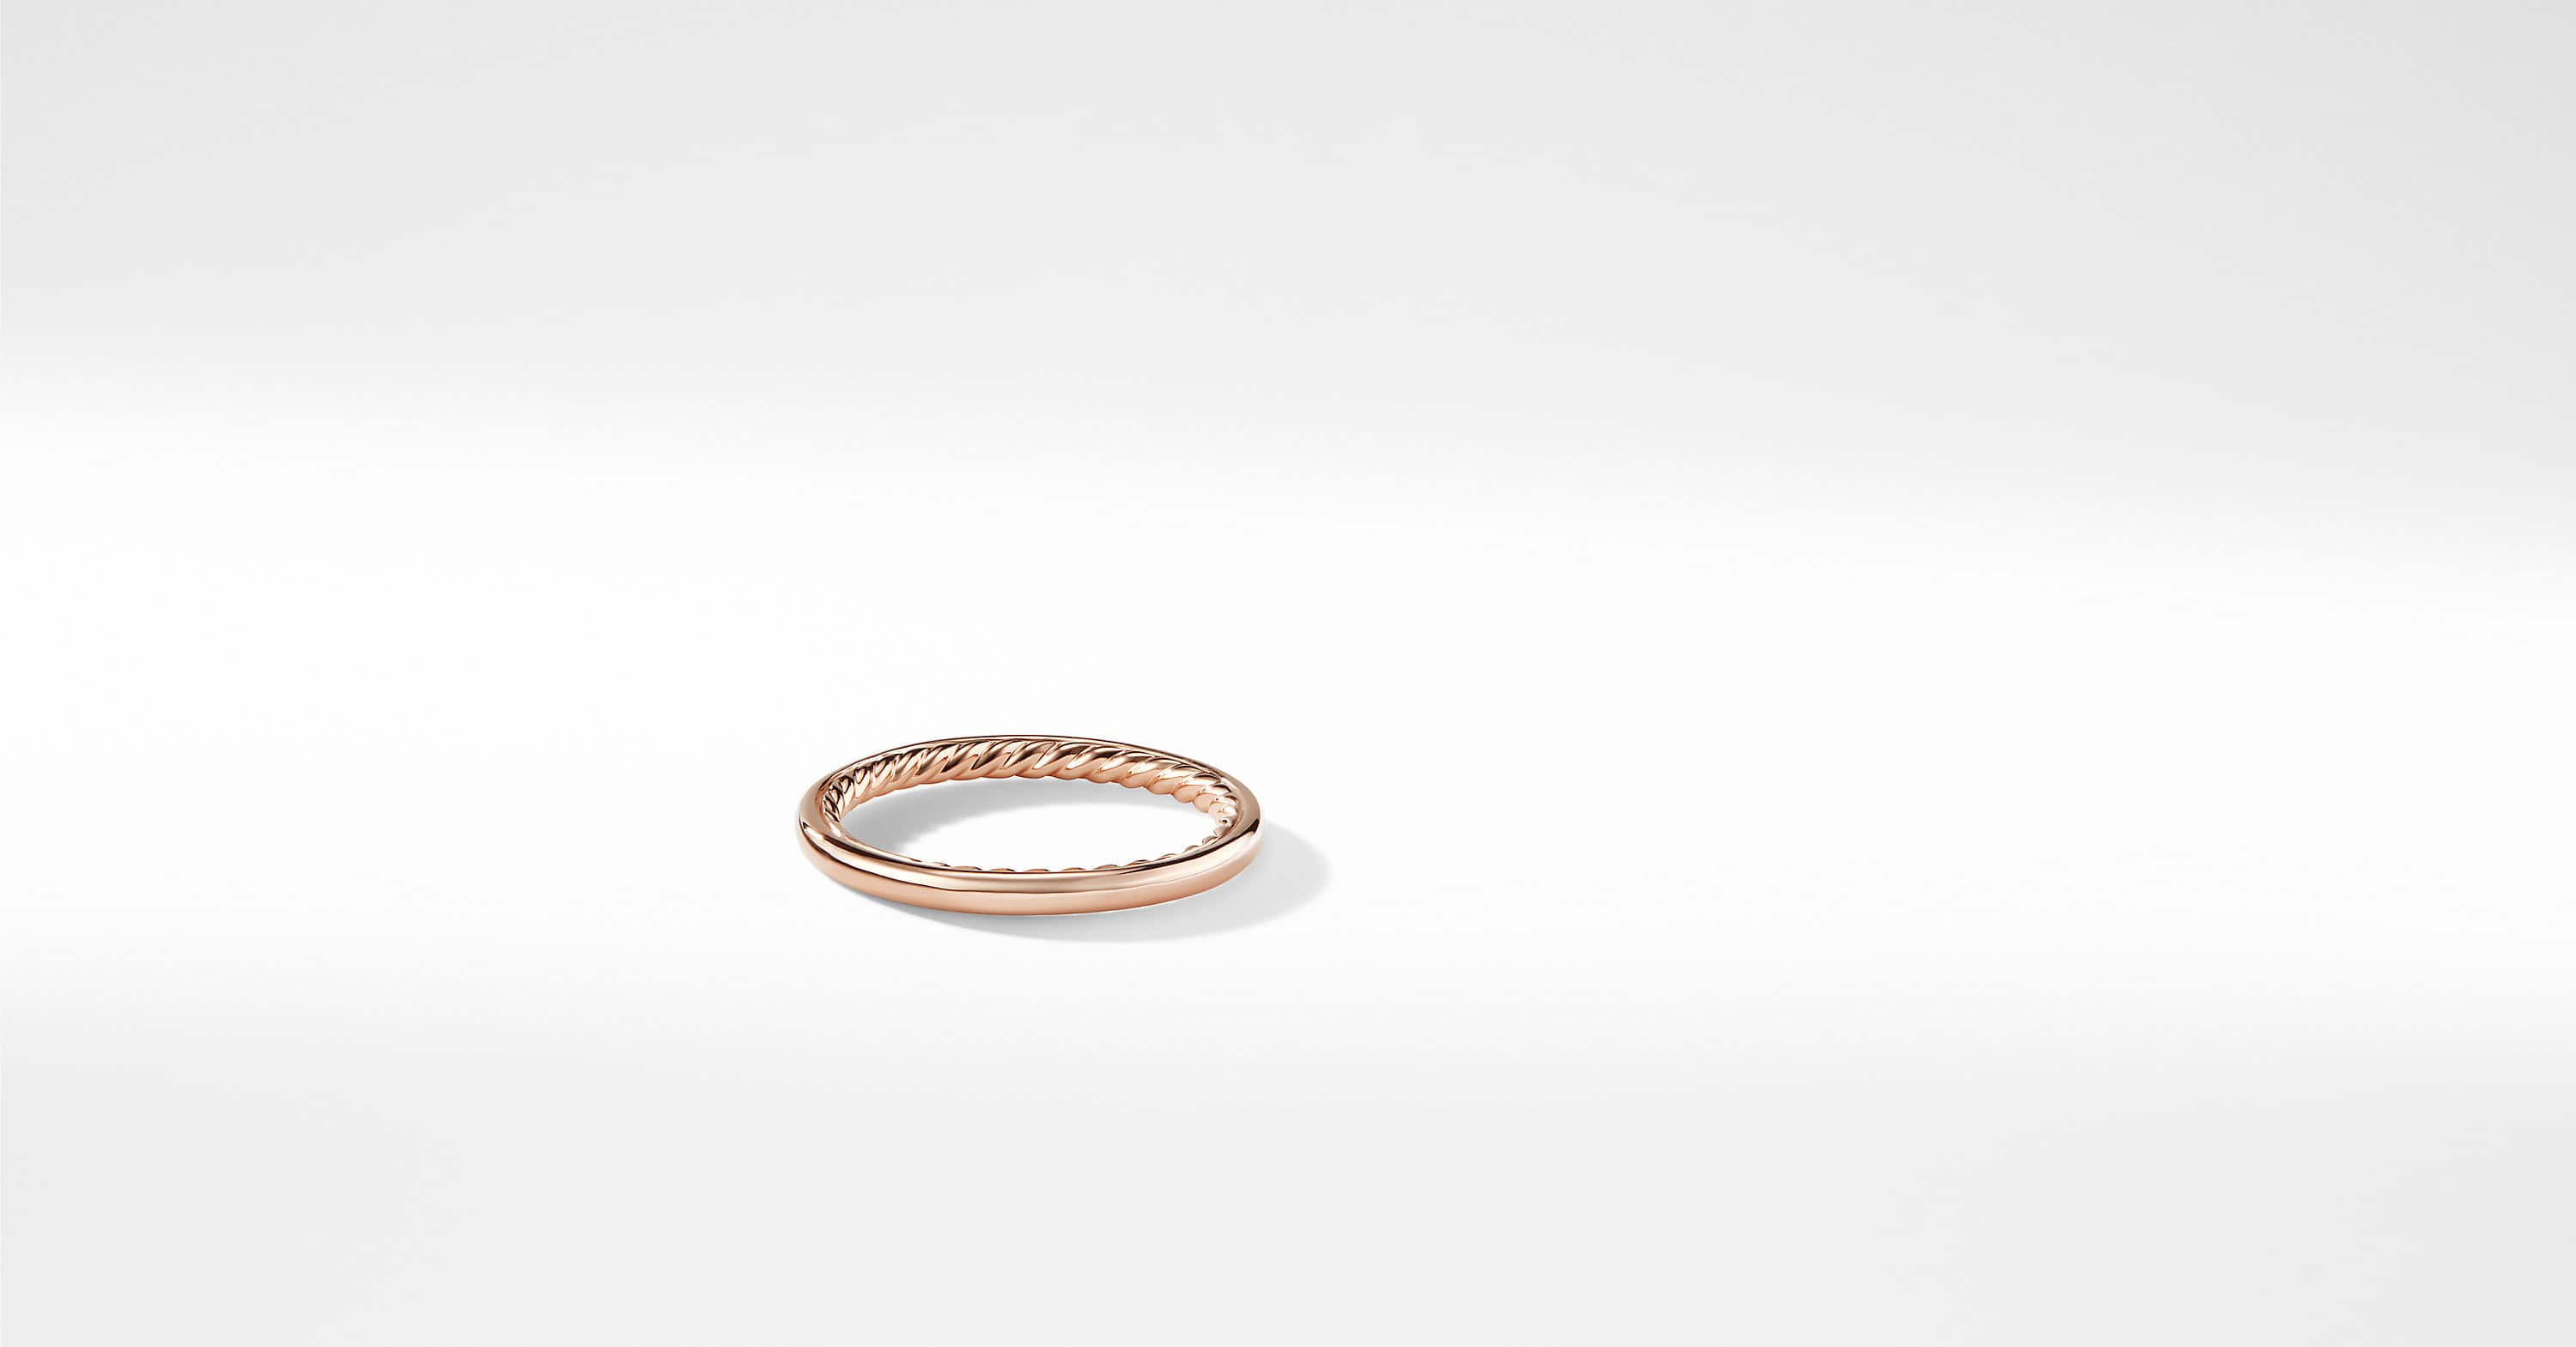 DY Eden Wedding Band in 18K Rose Gold, 2mm